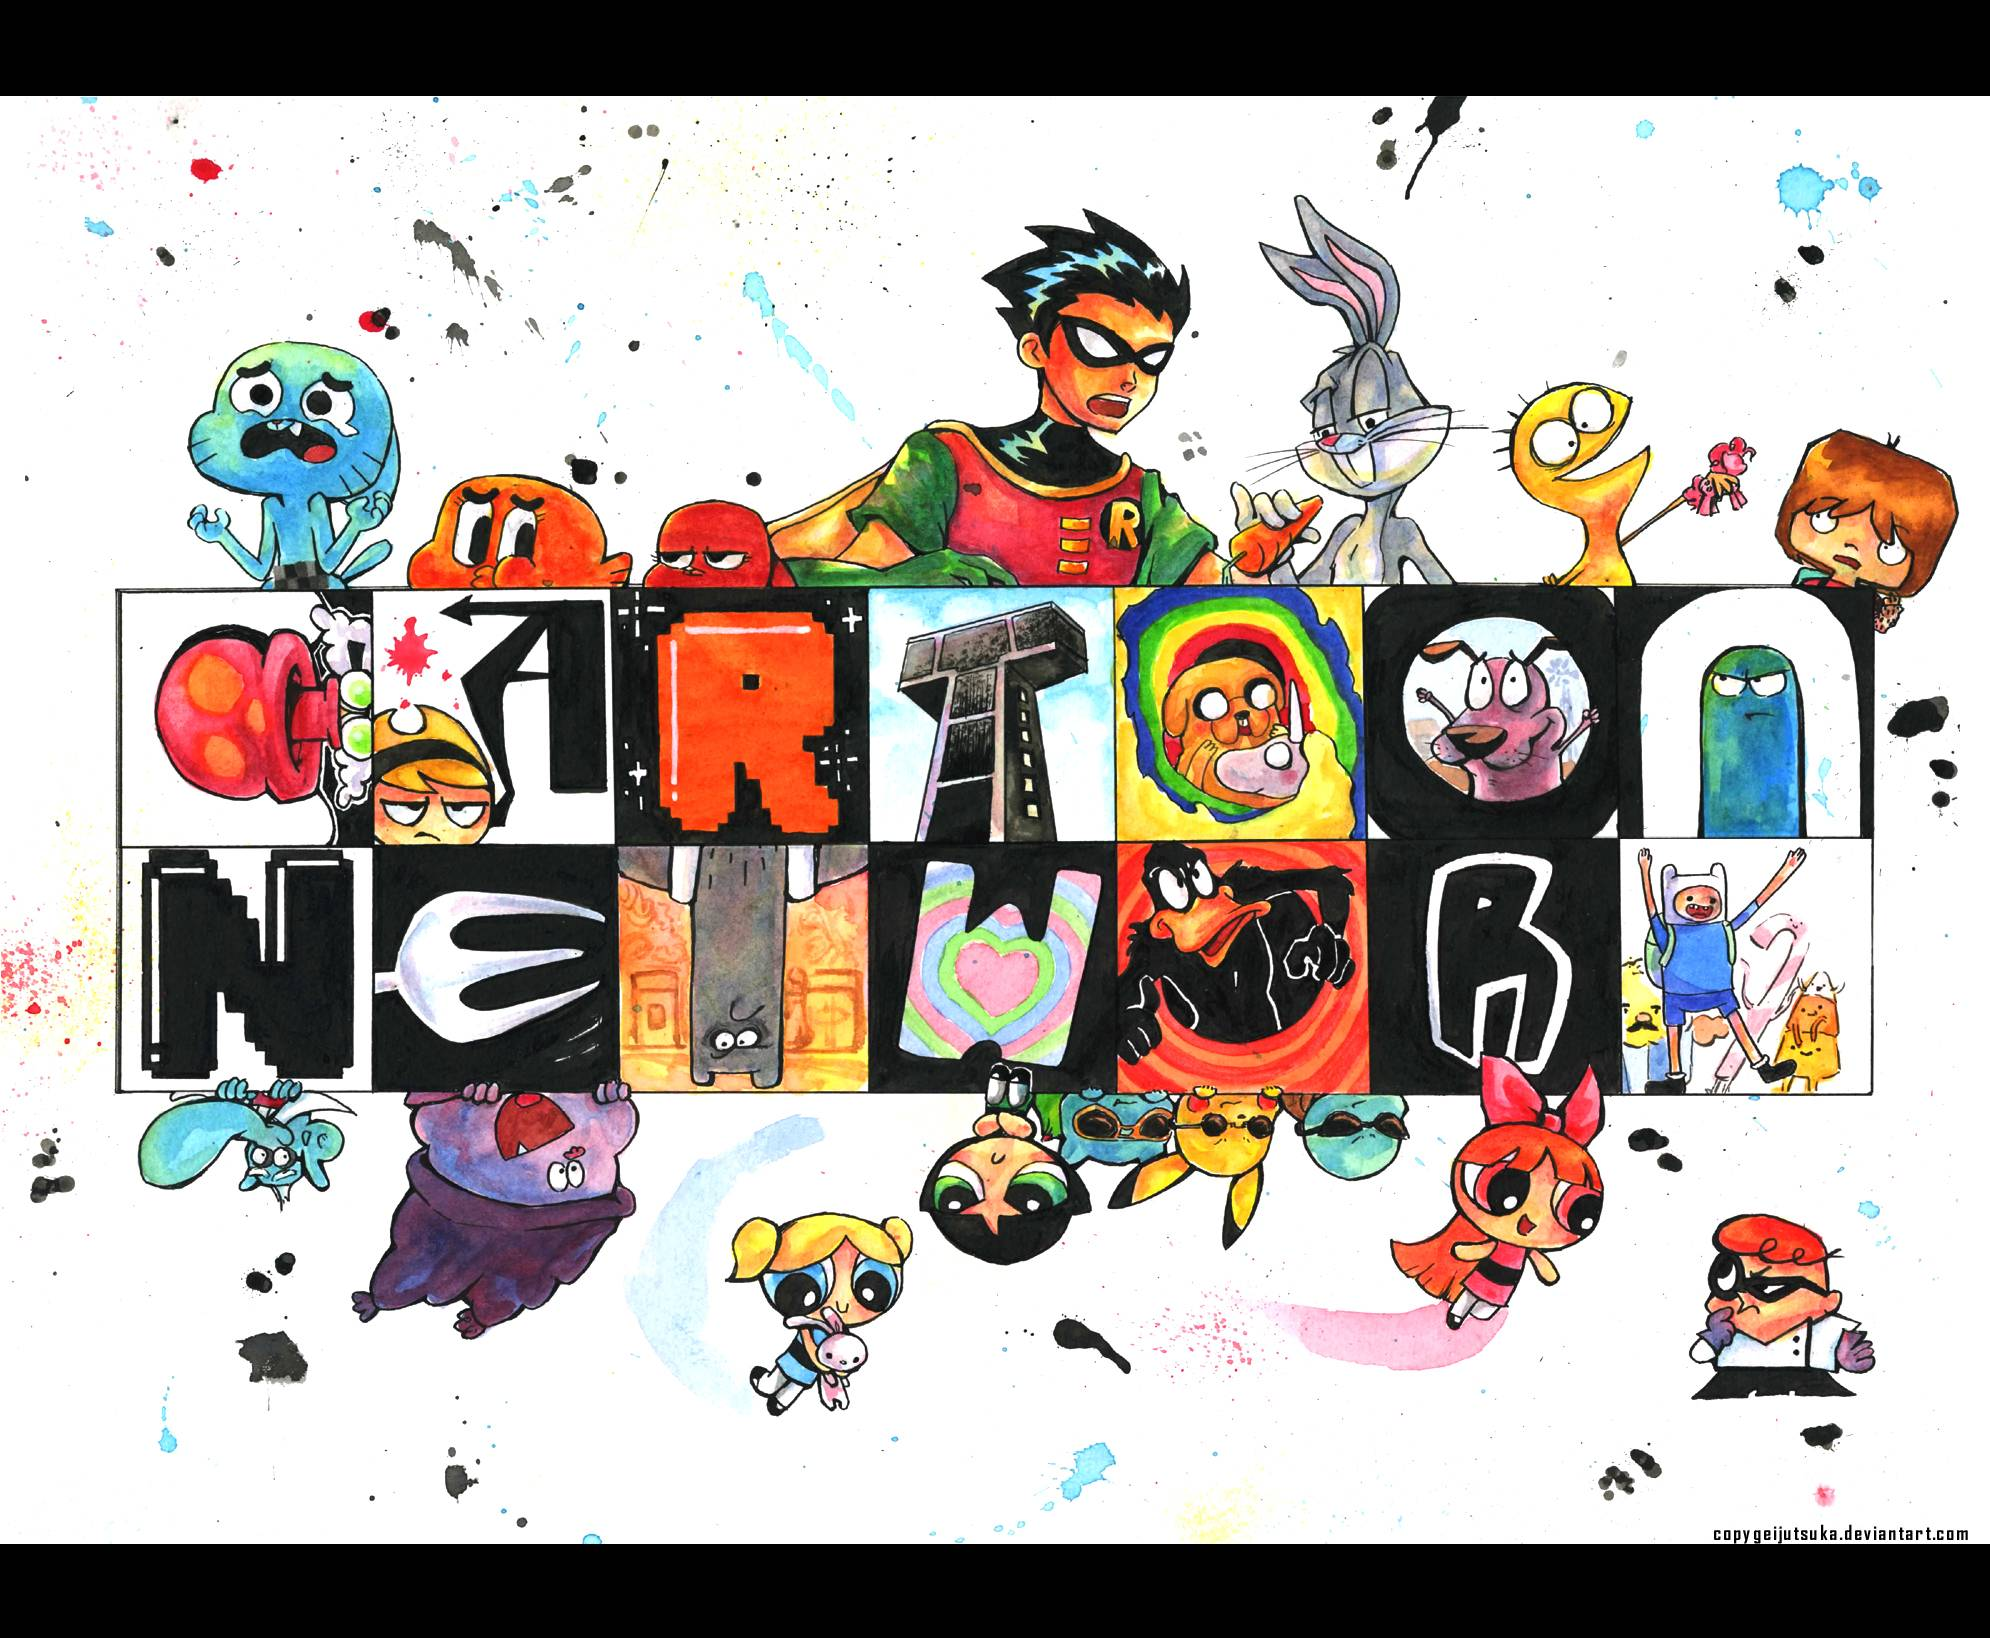 Cartoon Network Images Images 6 HD Wallpapers | lzamgs.